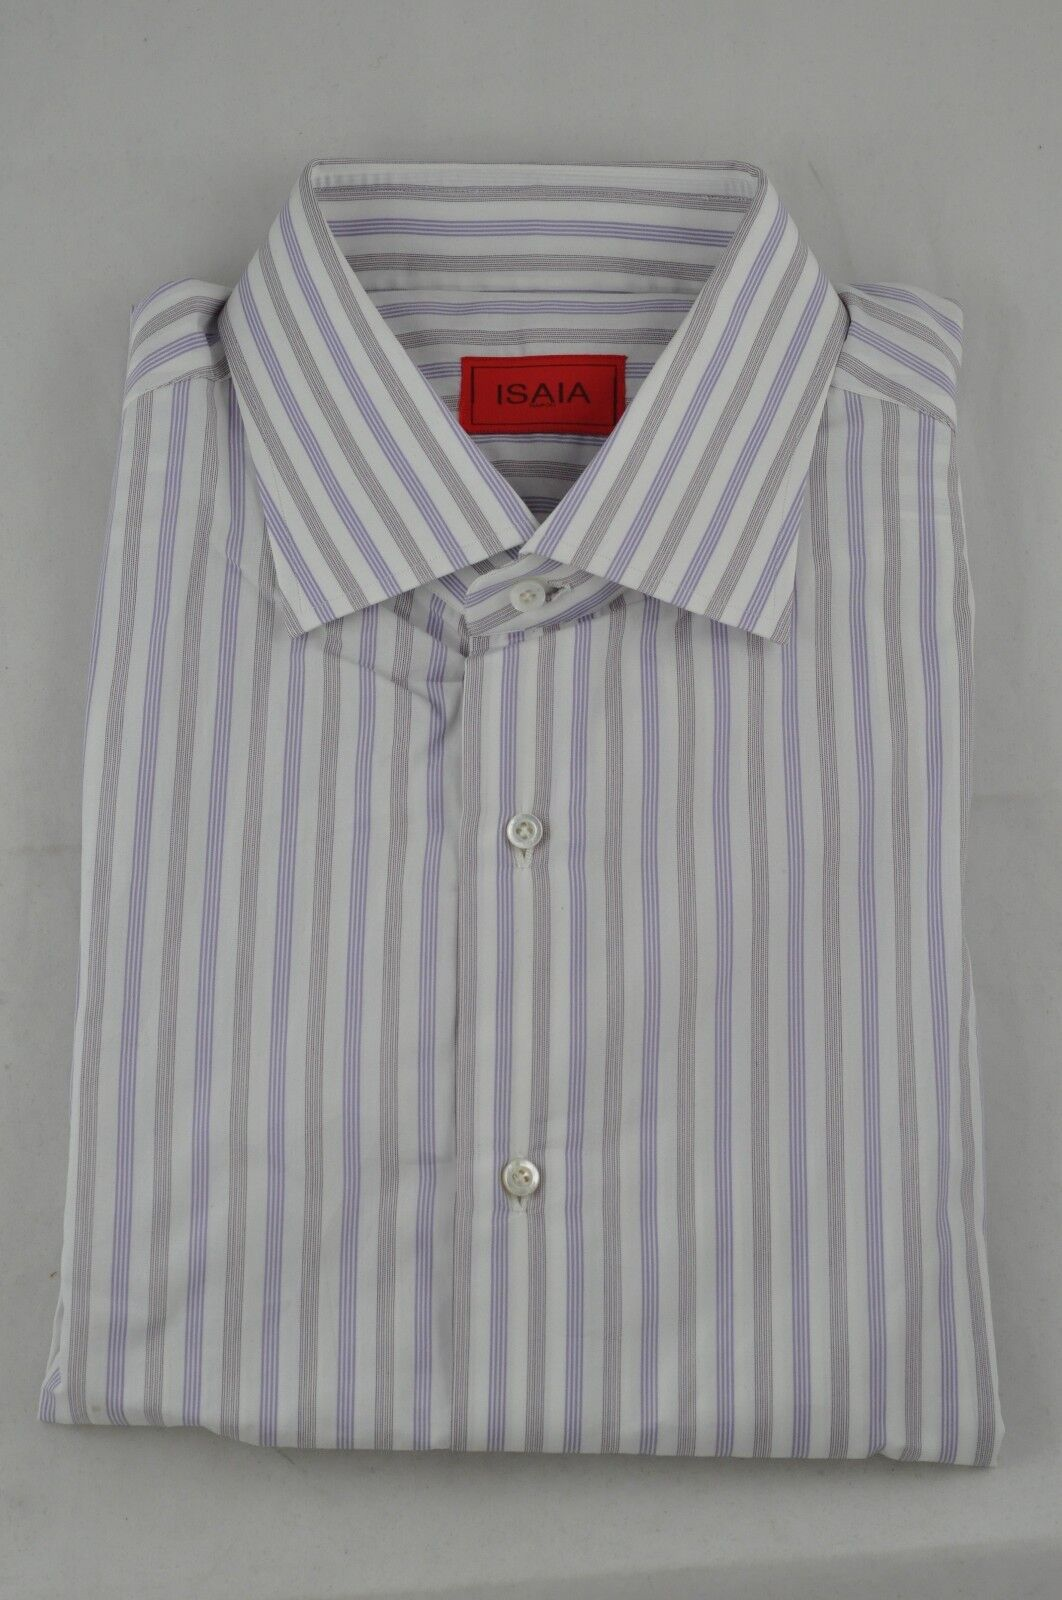 NWT ISAIA PURPLE AND WHITE STRIPED DRESS SHIRT SIZE 17